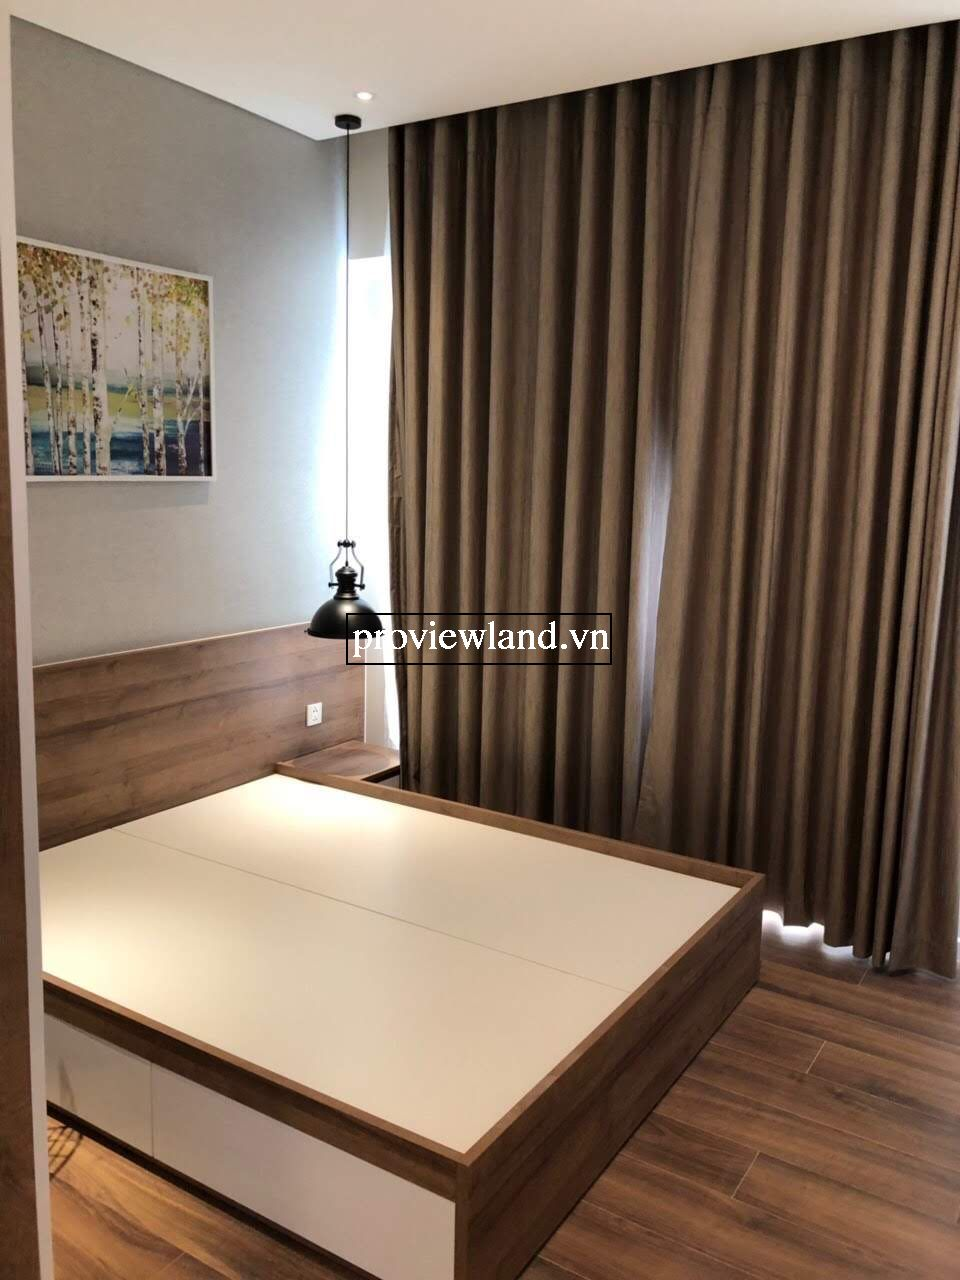 Diamond-Island-apartment-for-rent-3brs-proview-1500-08